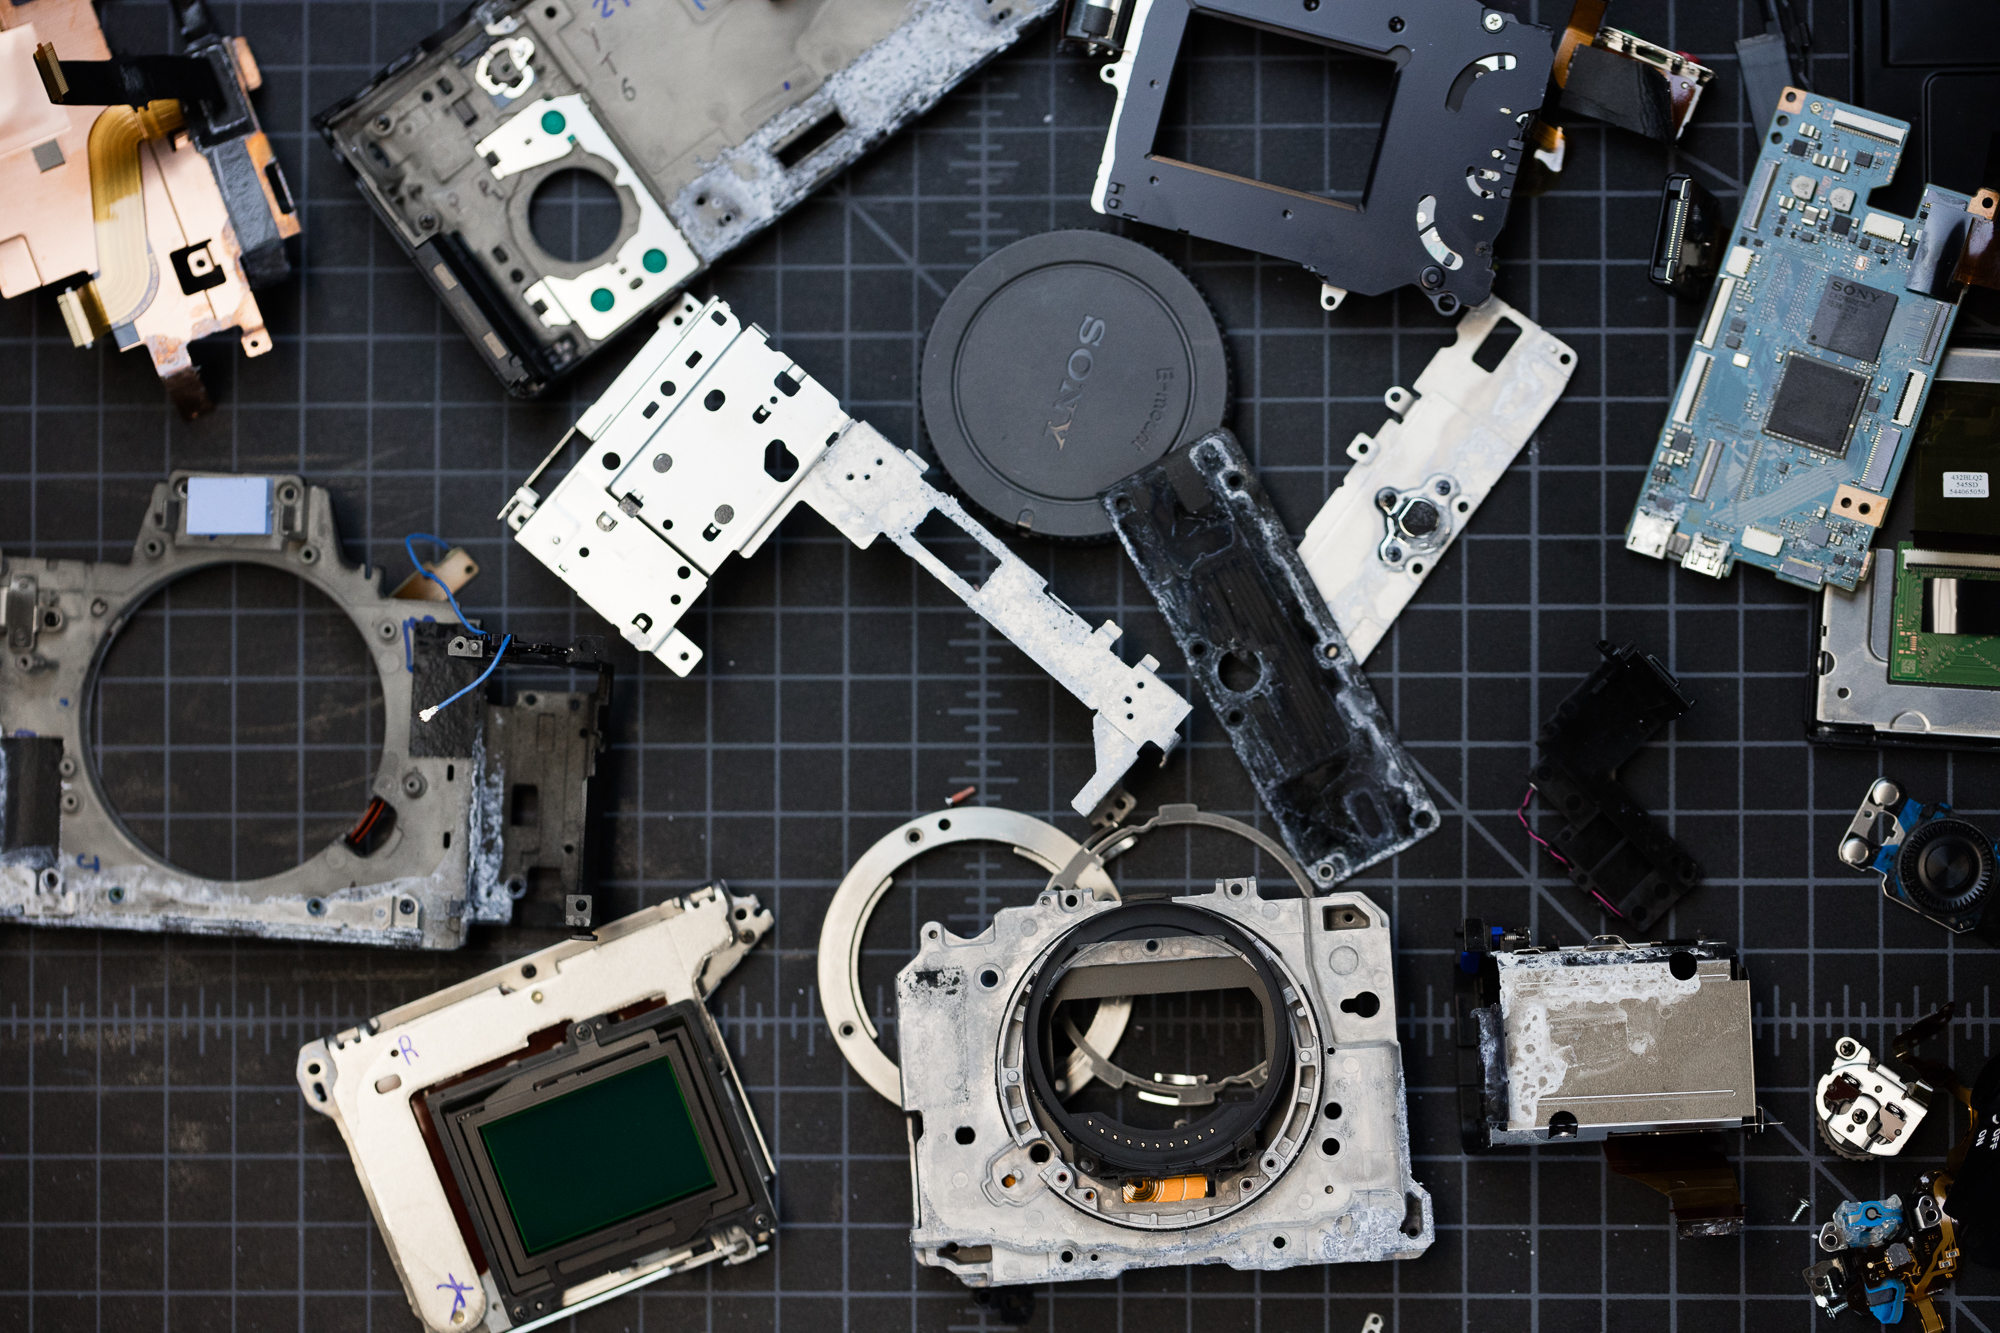 Sony A7sII disassembled into parts